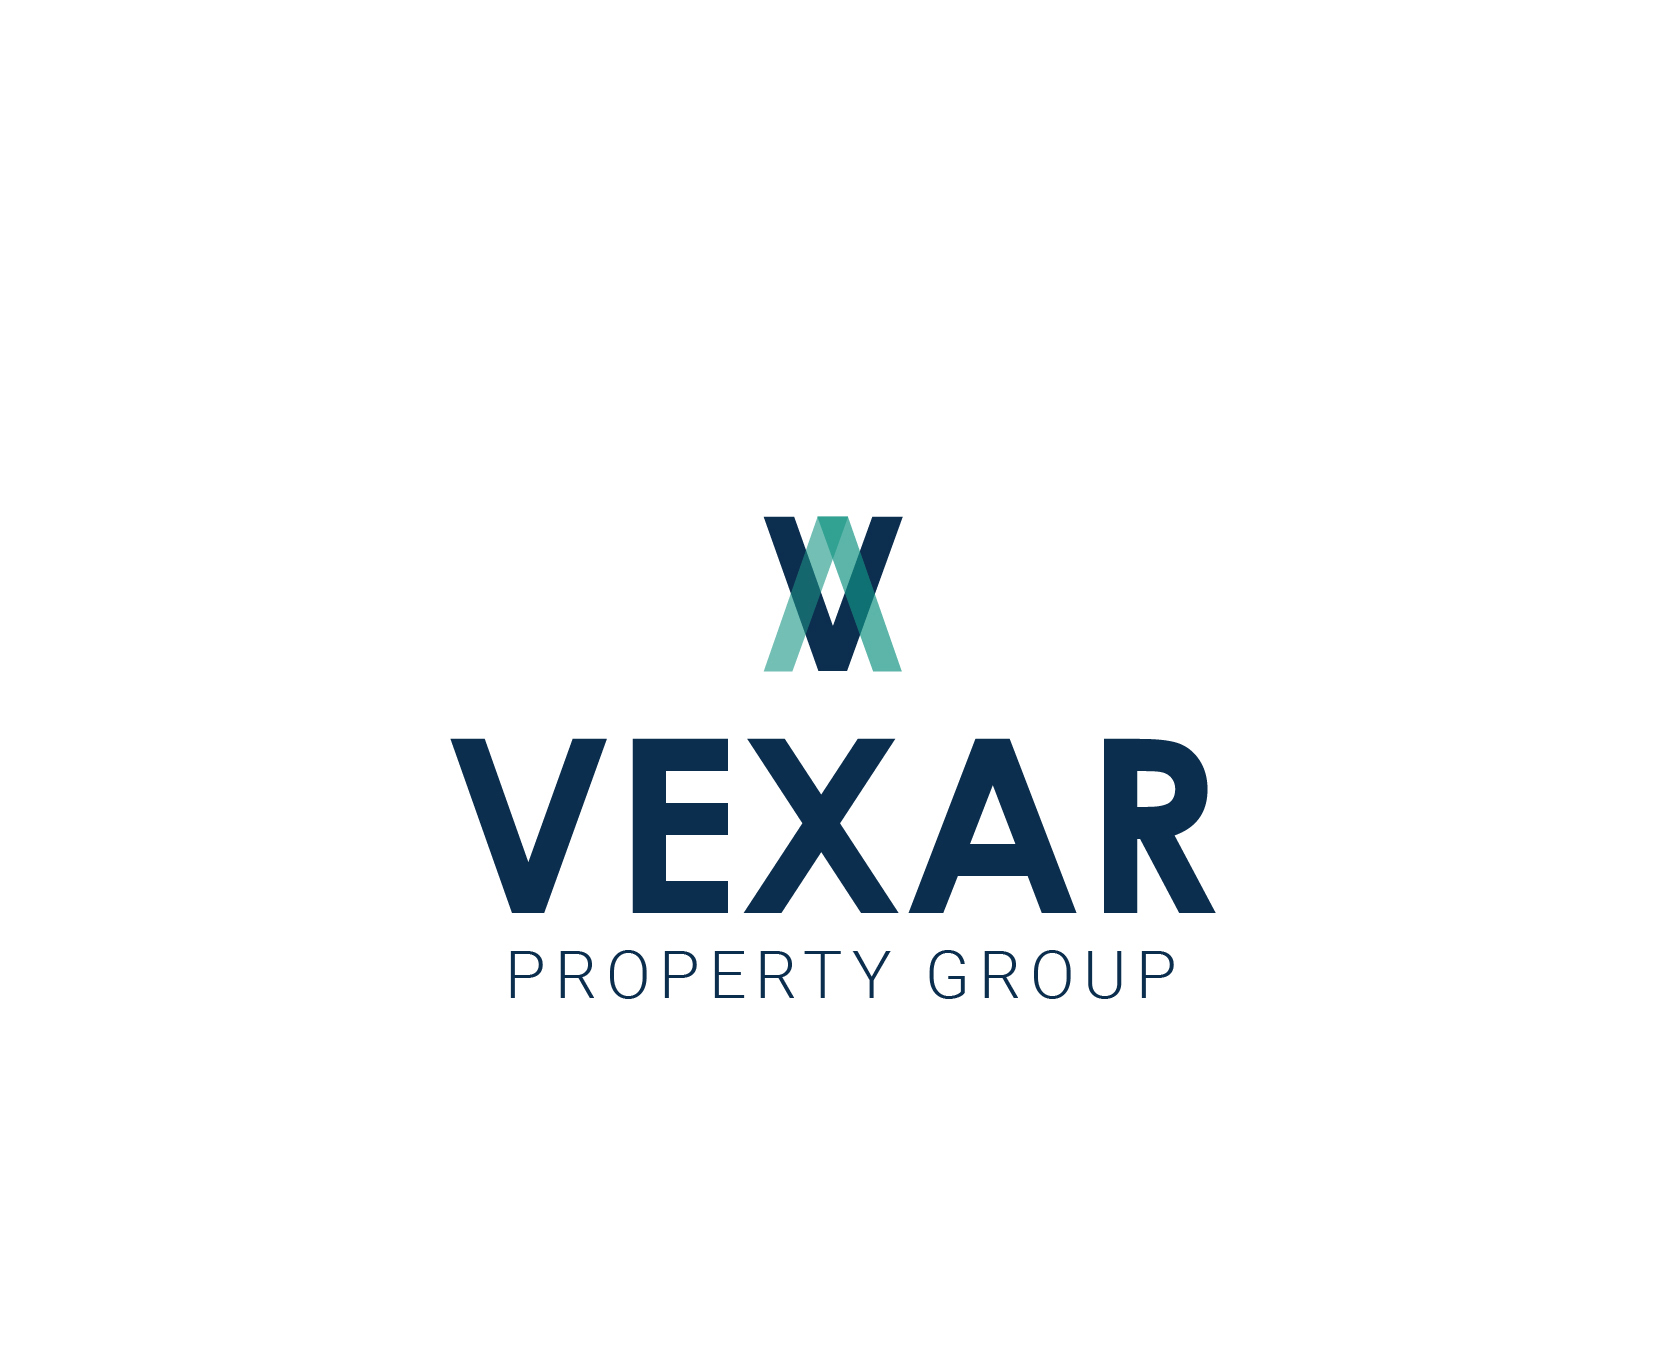 Vexar property group